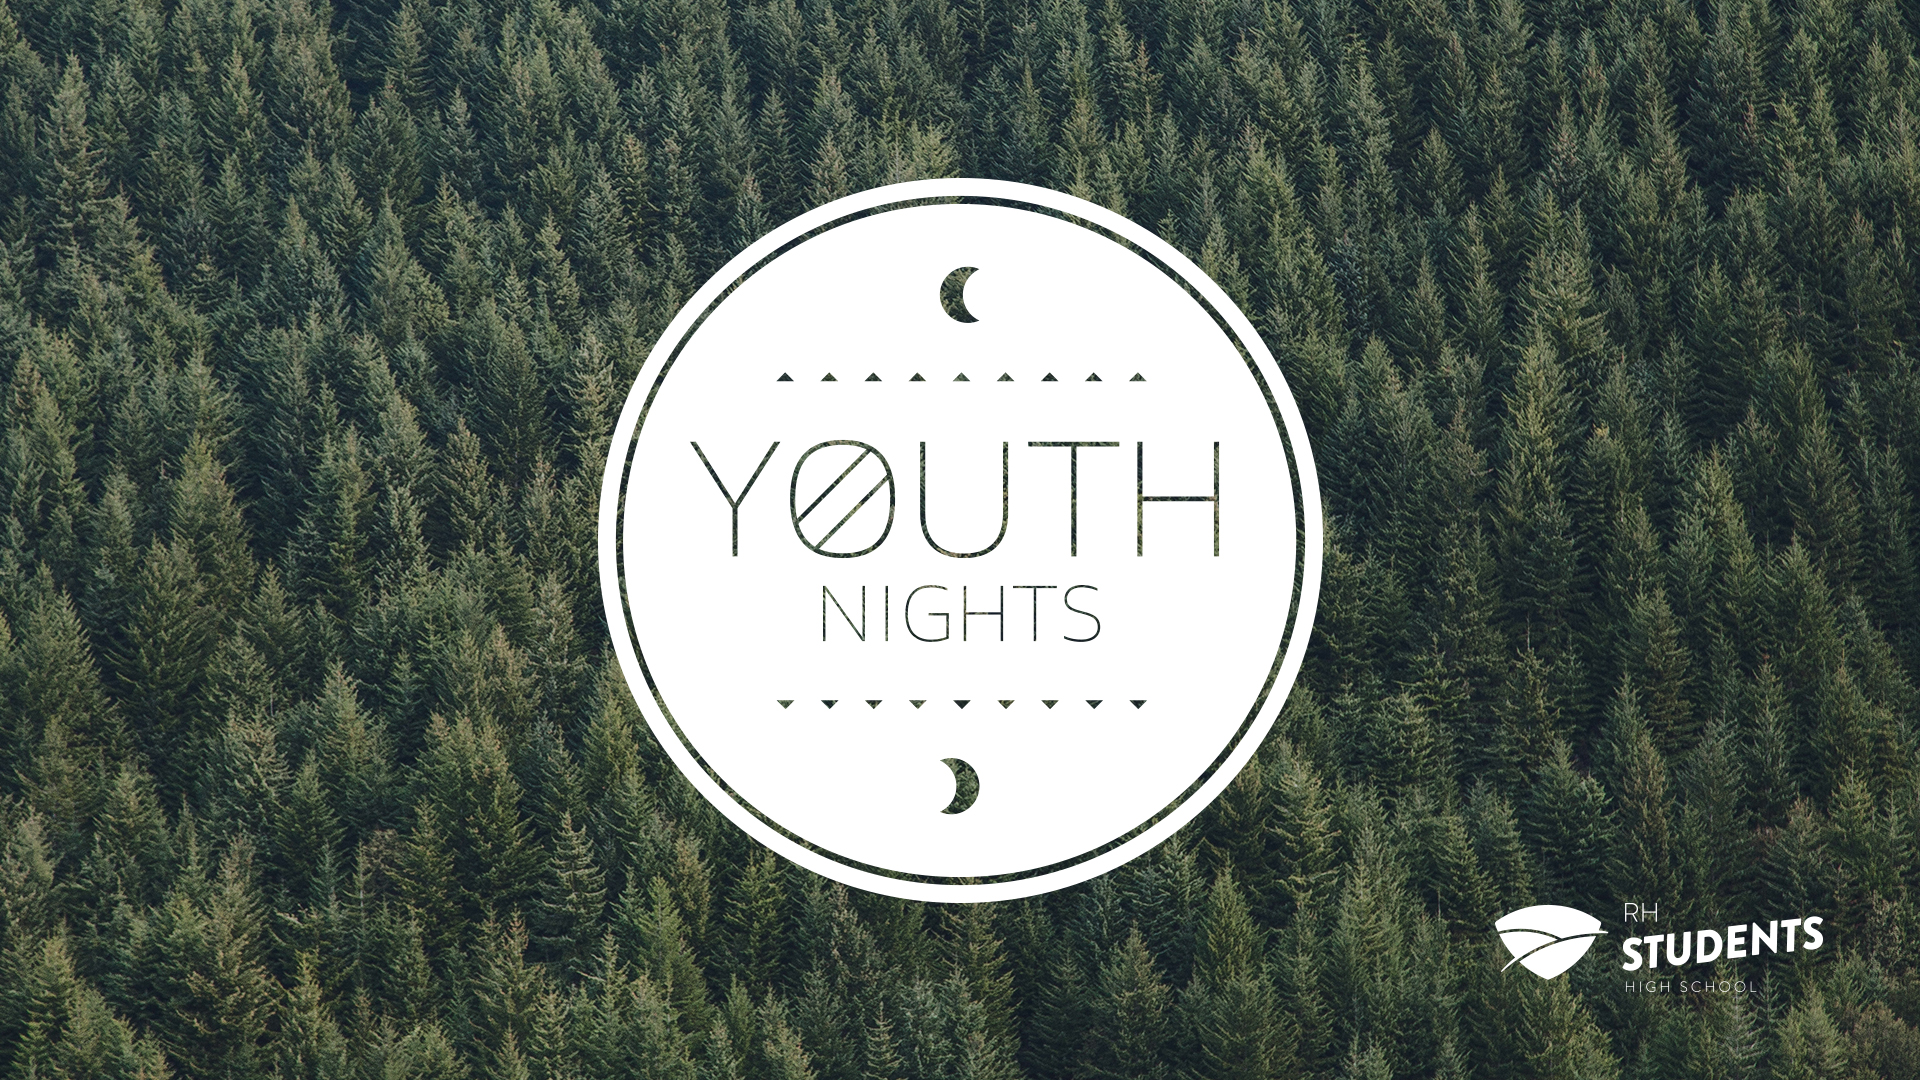 Youth nights 2016 tv 3